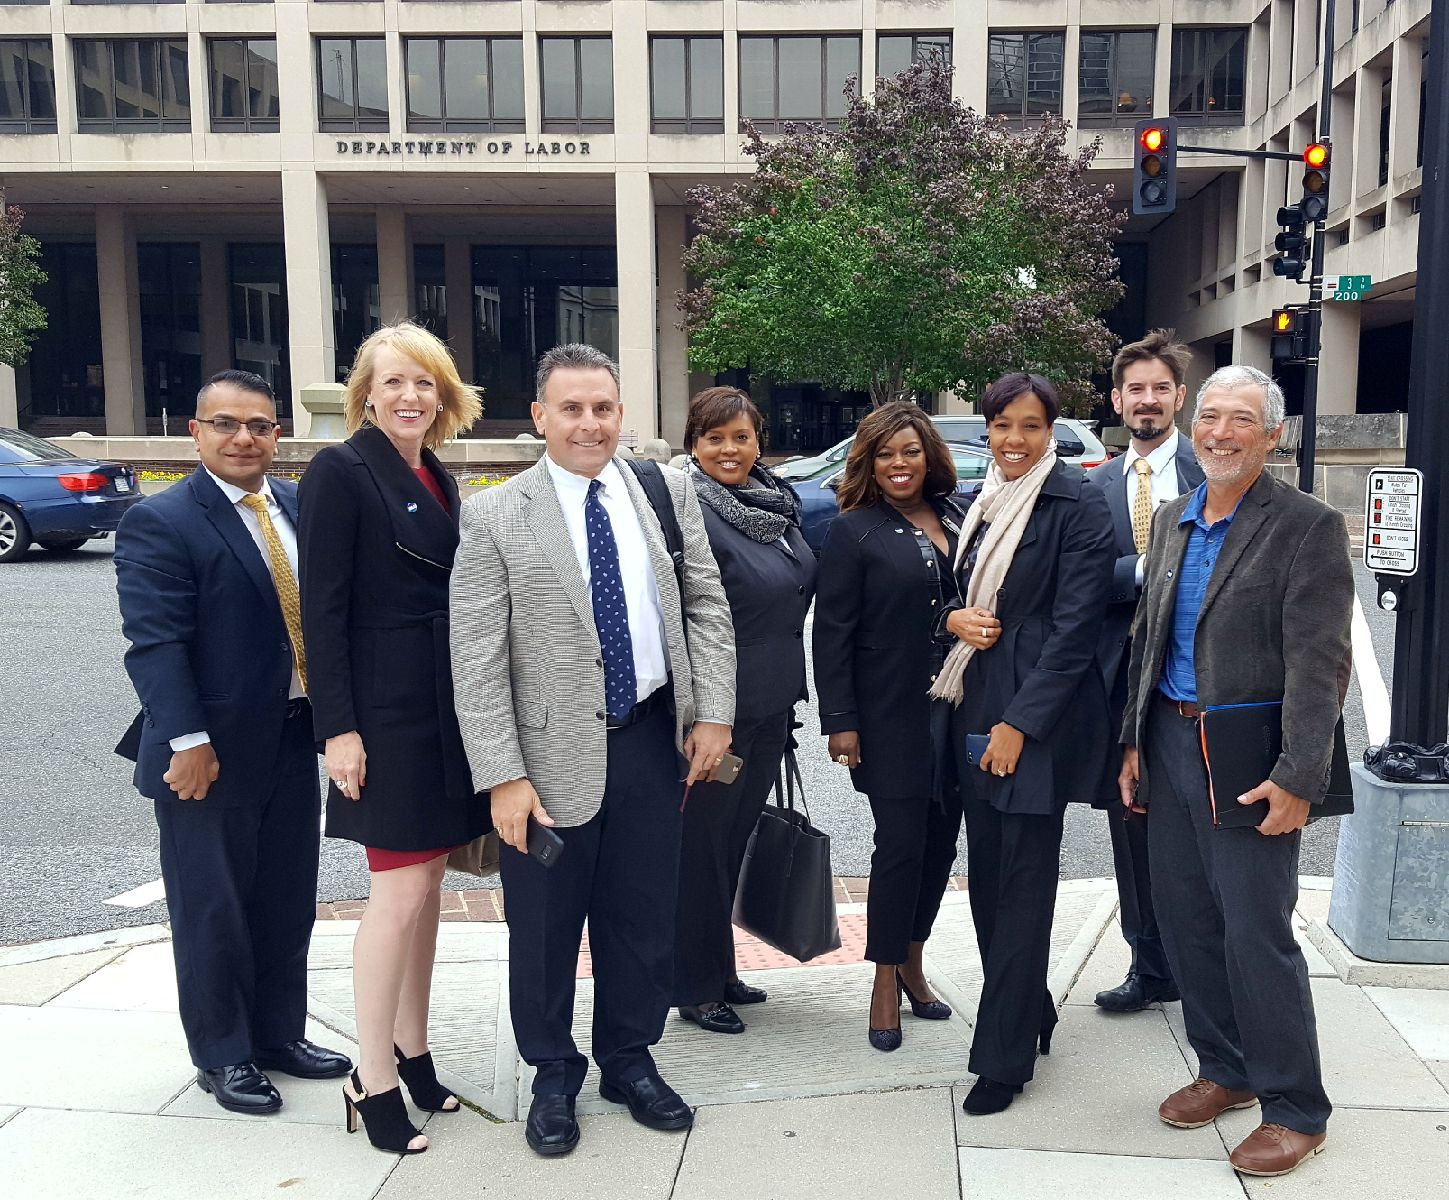 BLU members fly to DC to meet with members of the Administration